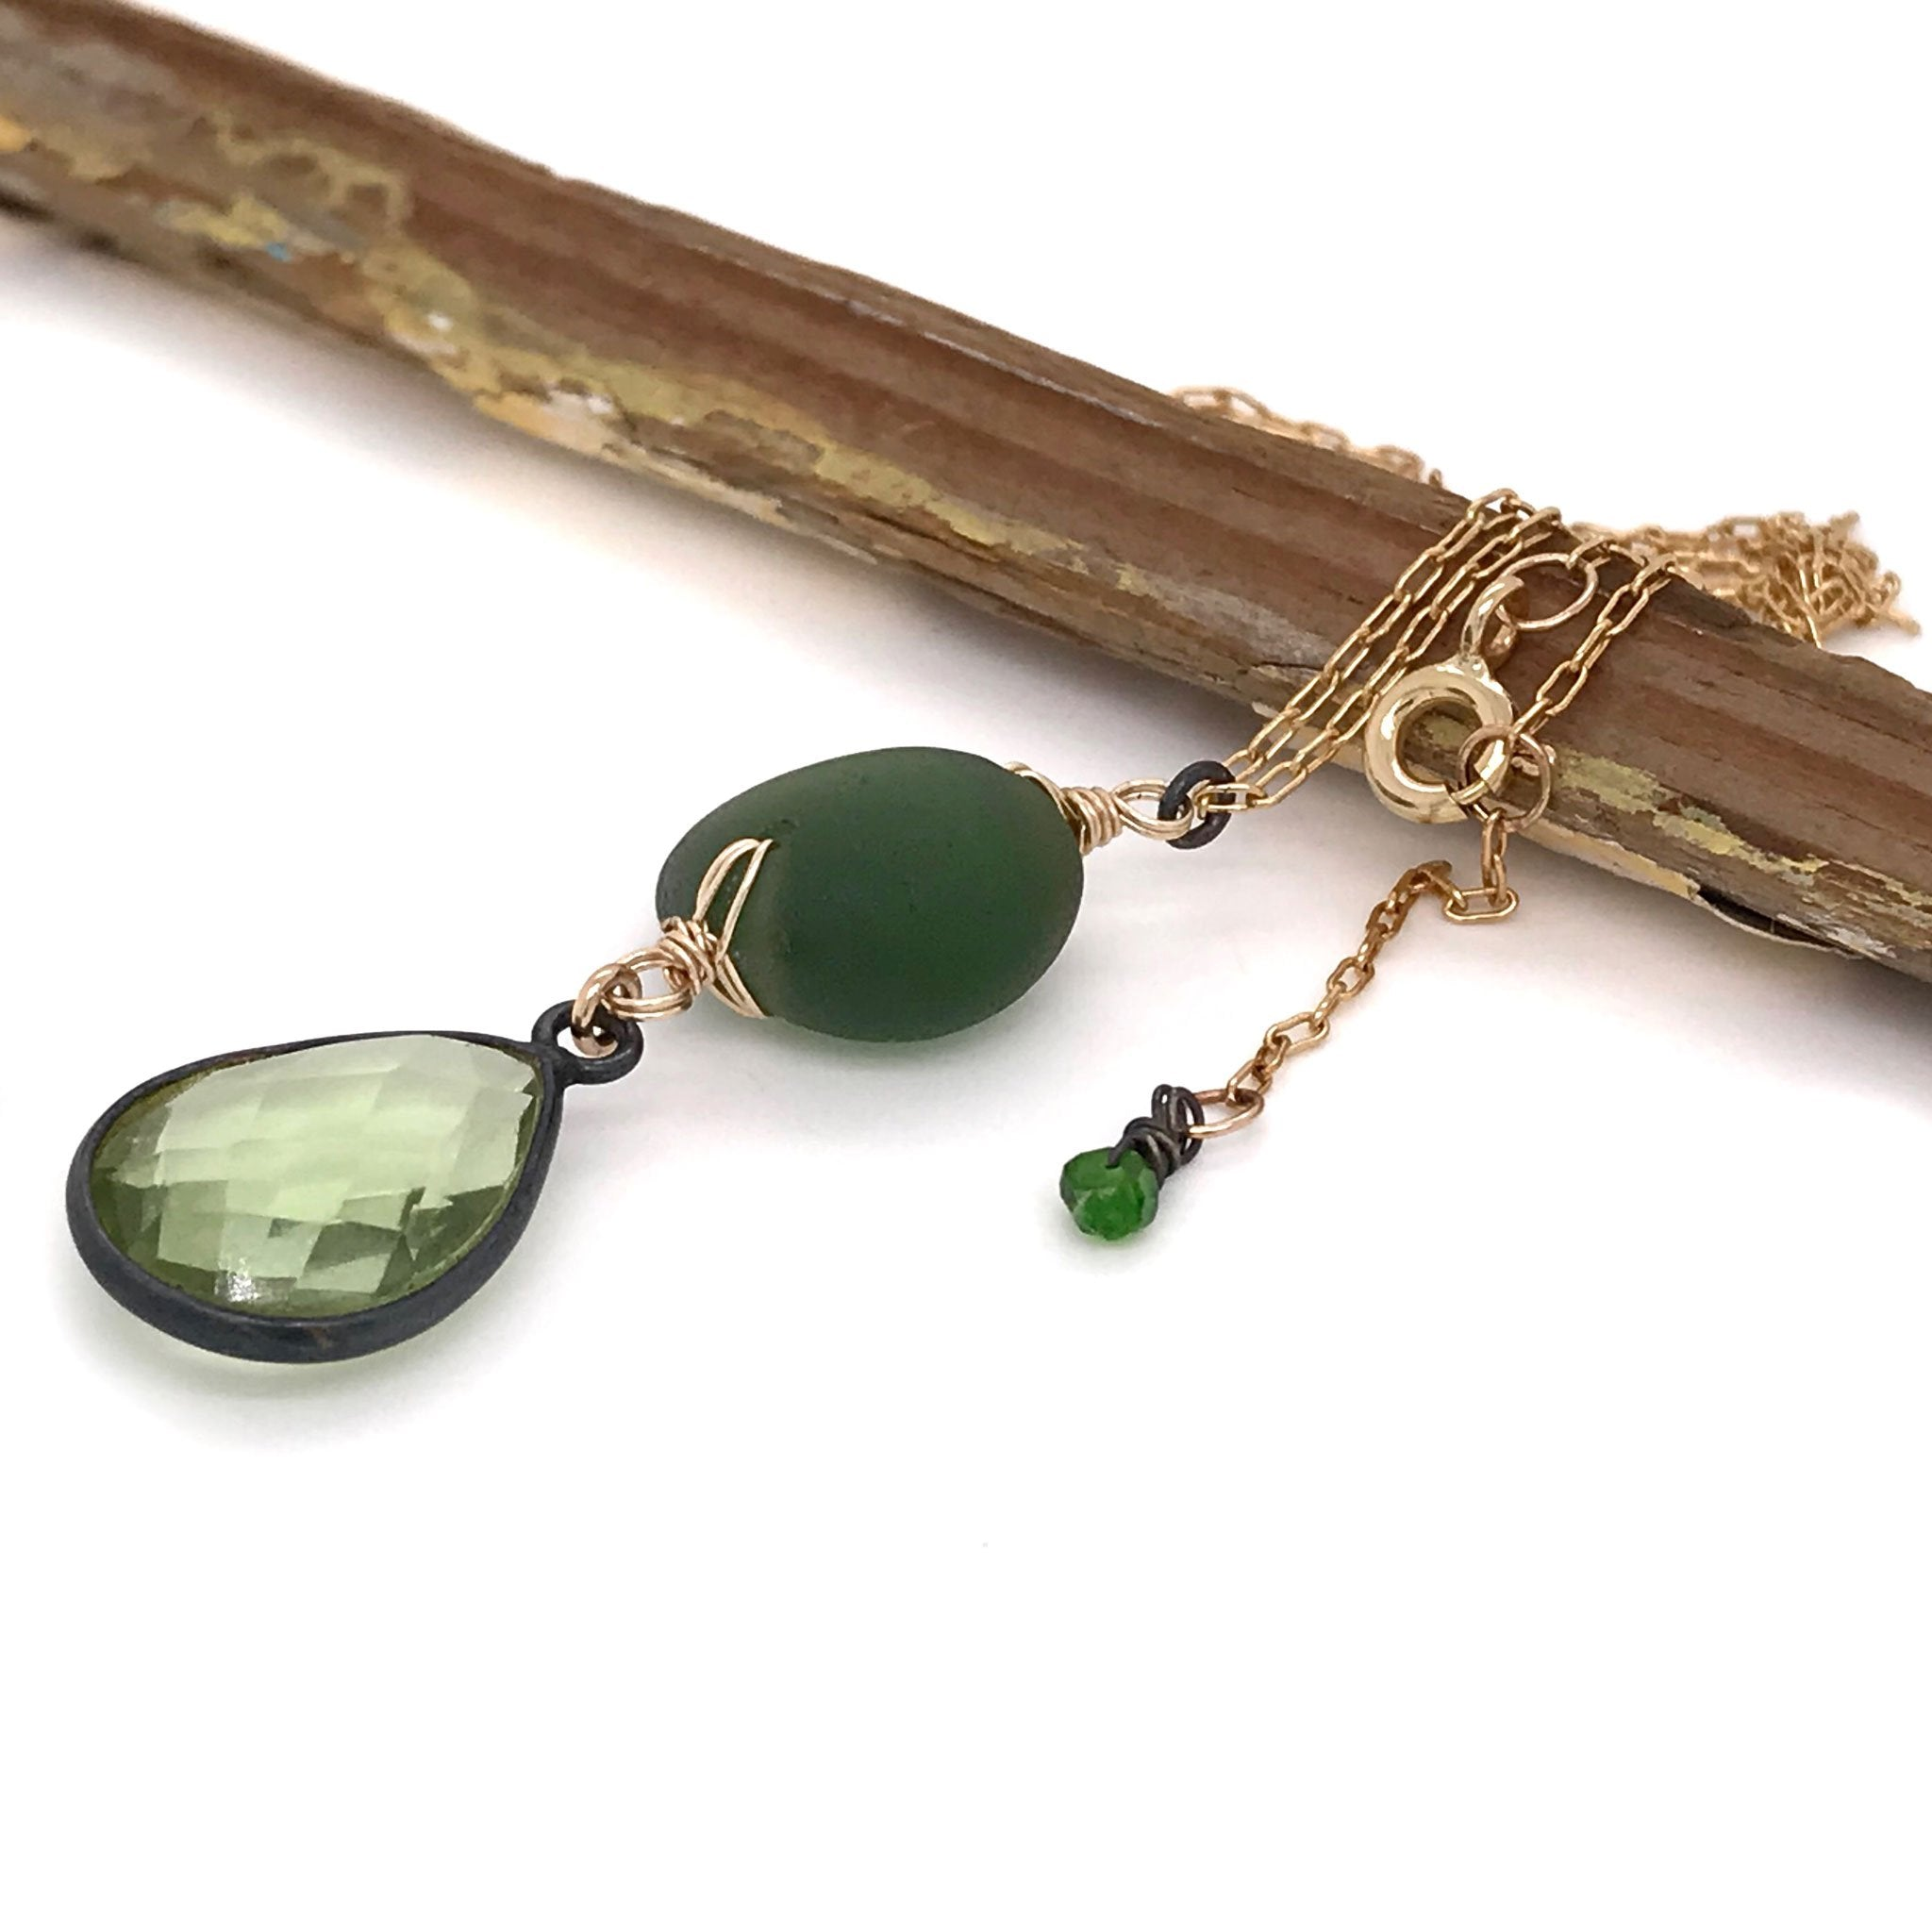 gold necklace with green seaglass and quartz kriket Broadhurst jewelry